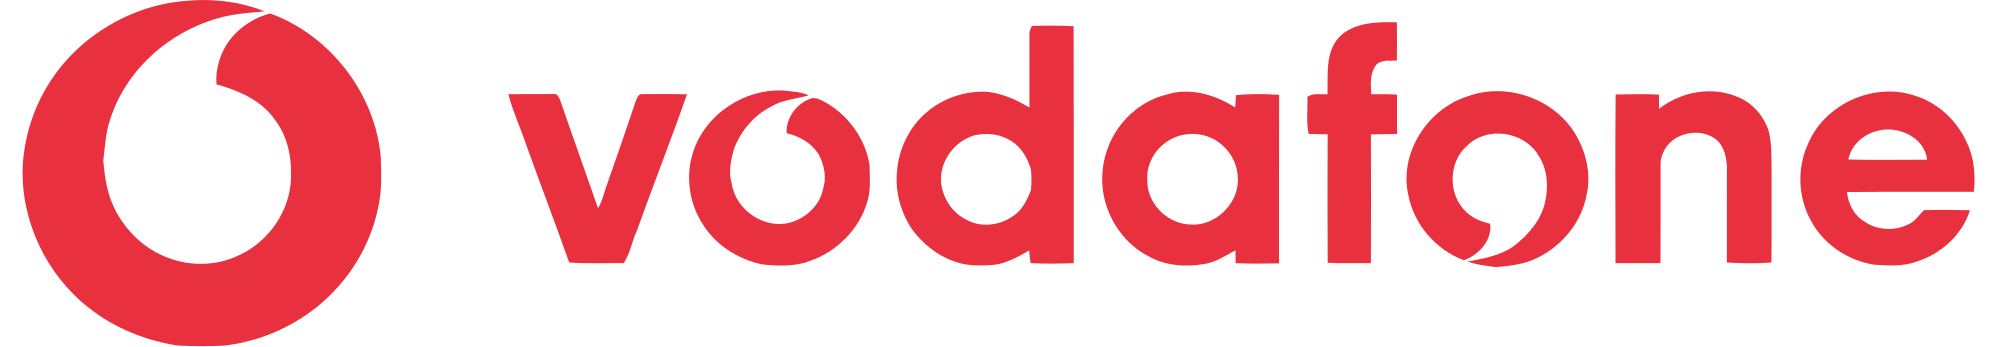 Vodafone Group PLC